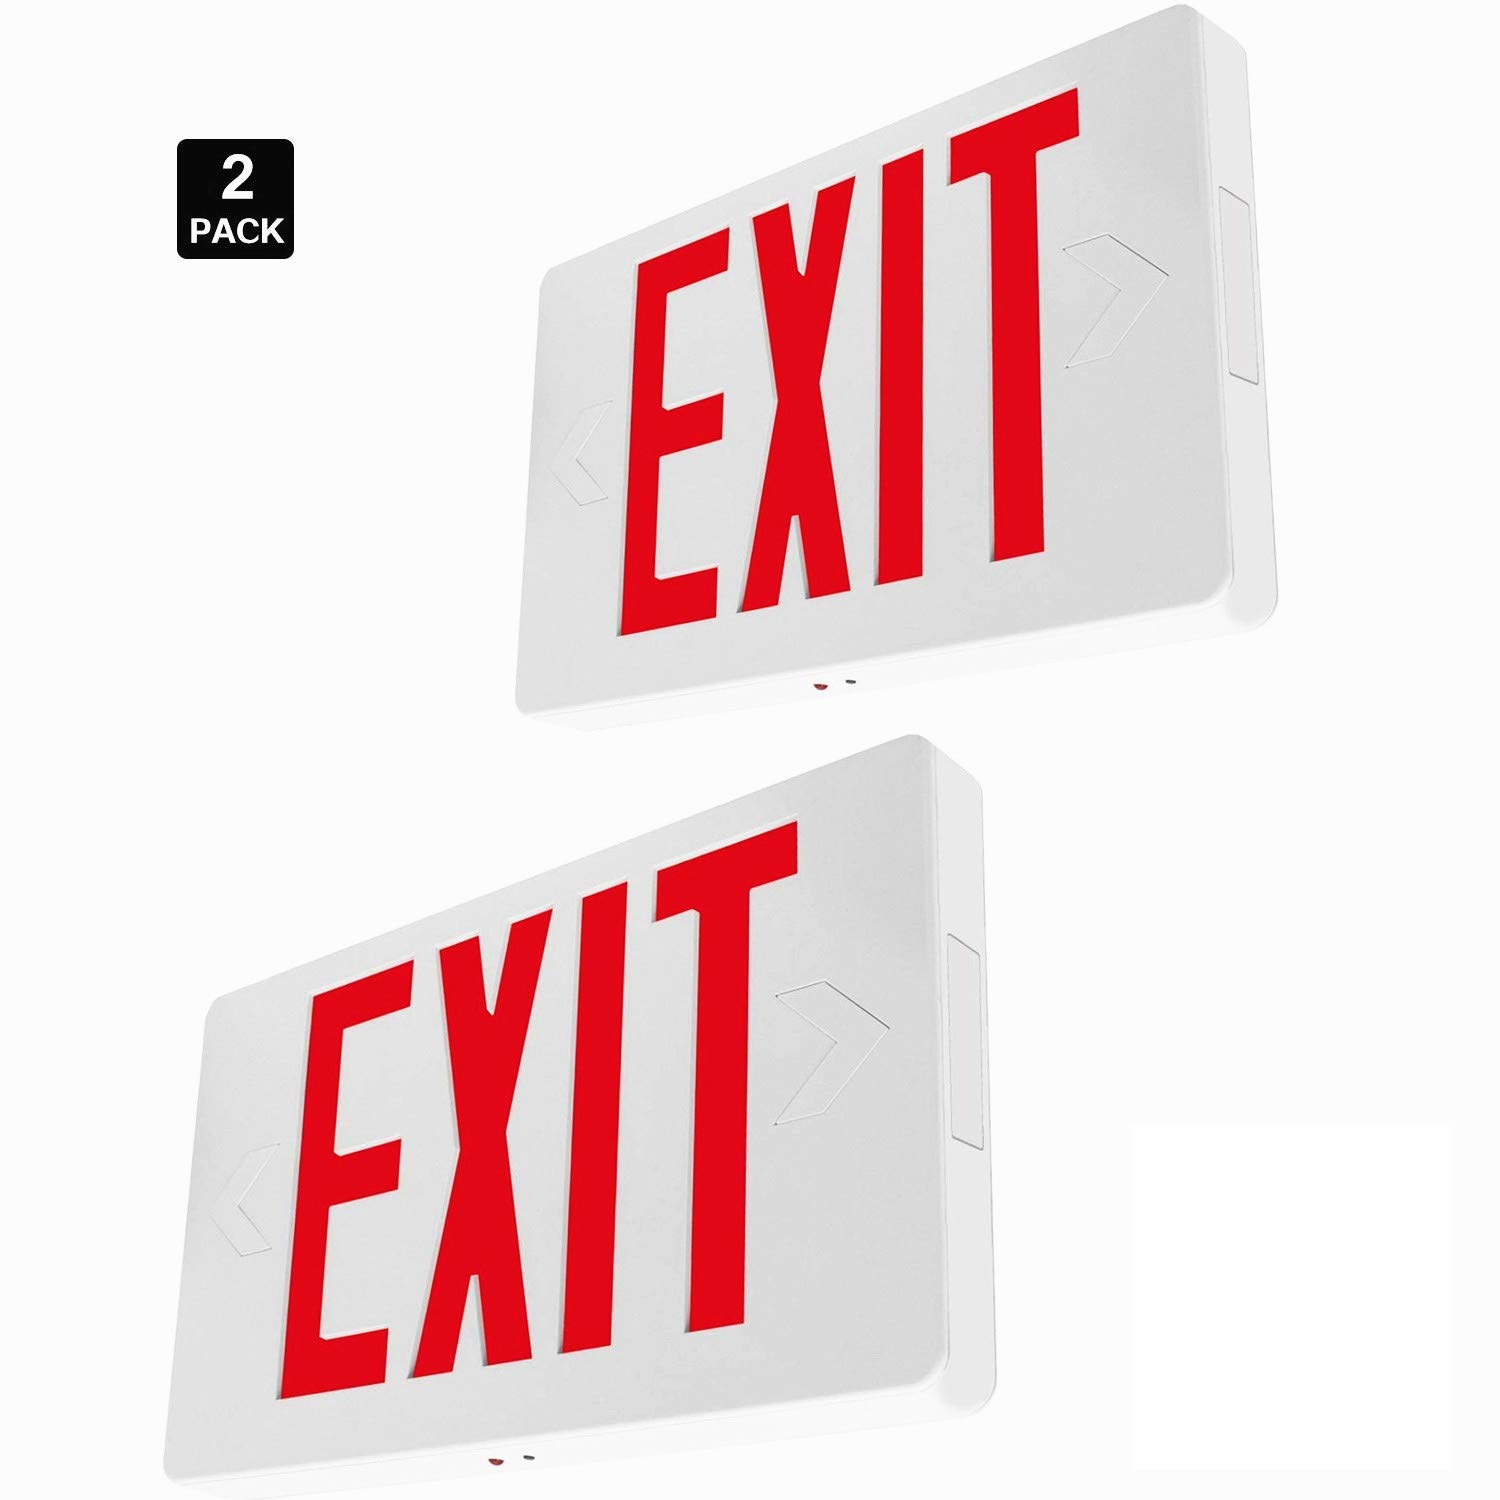 YeuLoum LED Exit Sign, Red Letter Emergency Exit Lights, 120V-277V Universal Mounting Double Face with Battery Backup, UL-Listed for Apartments, Hotels, Schools (2 Pack)